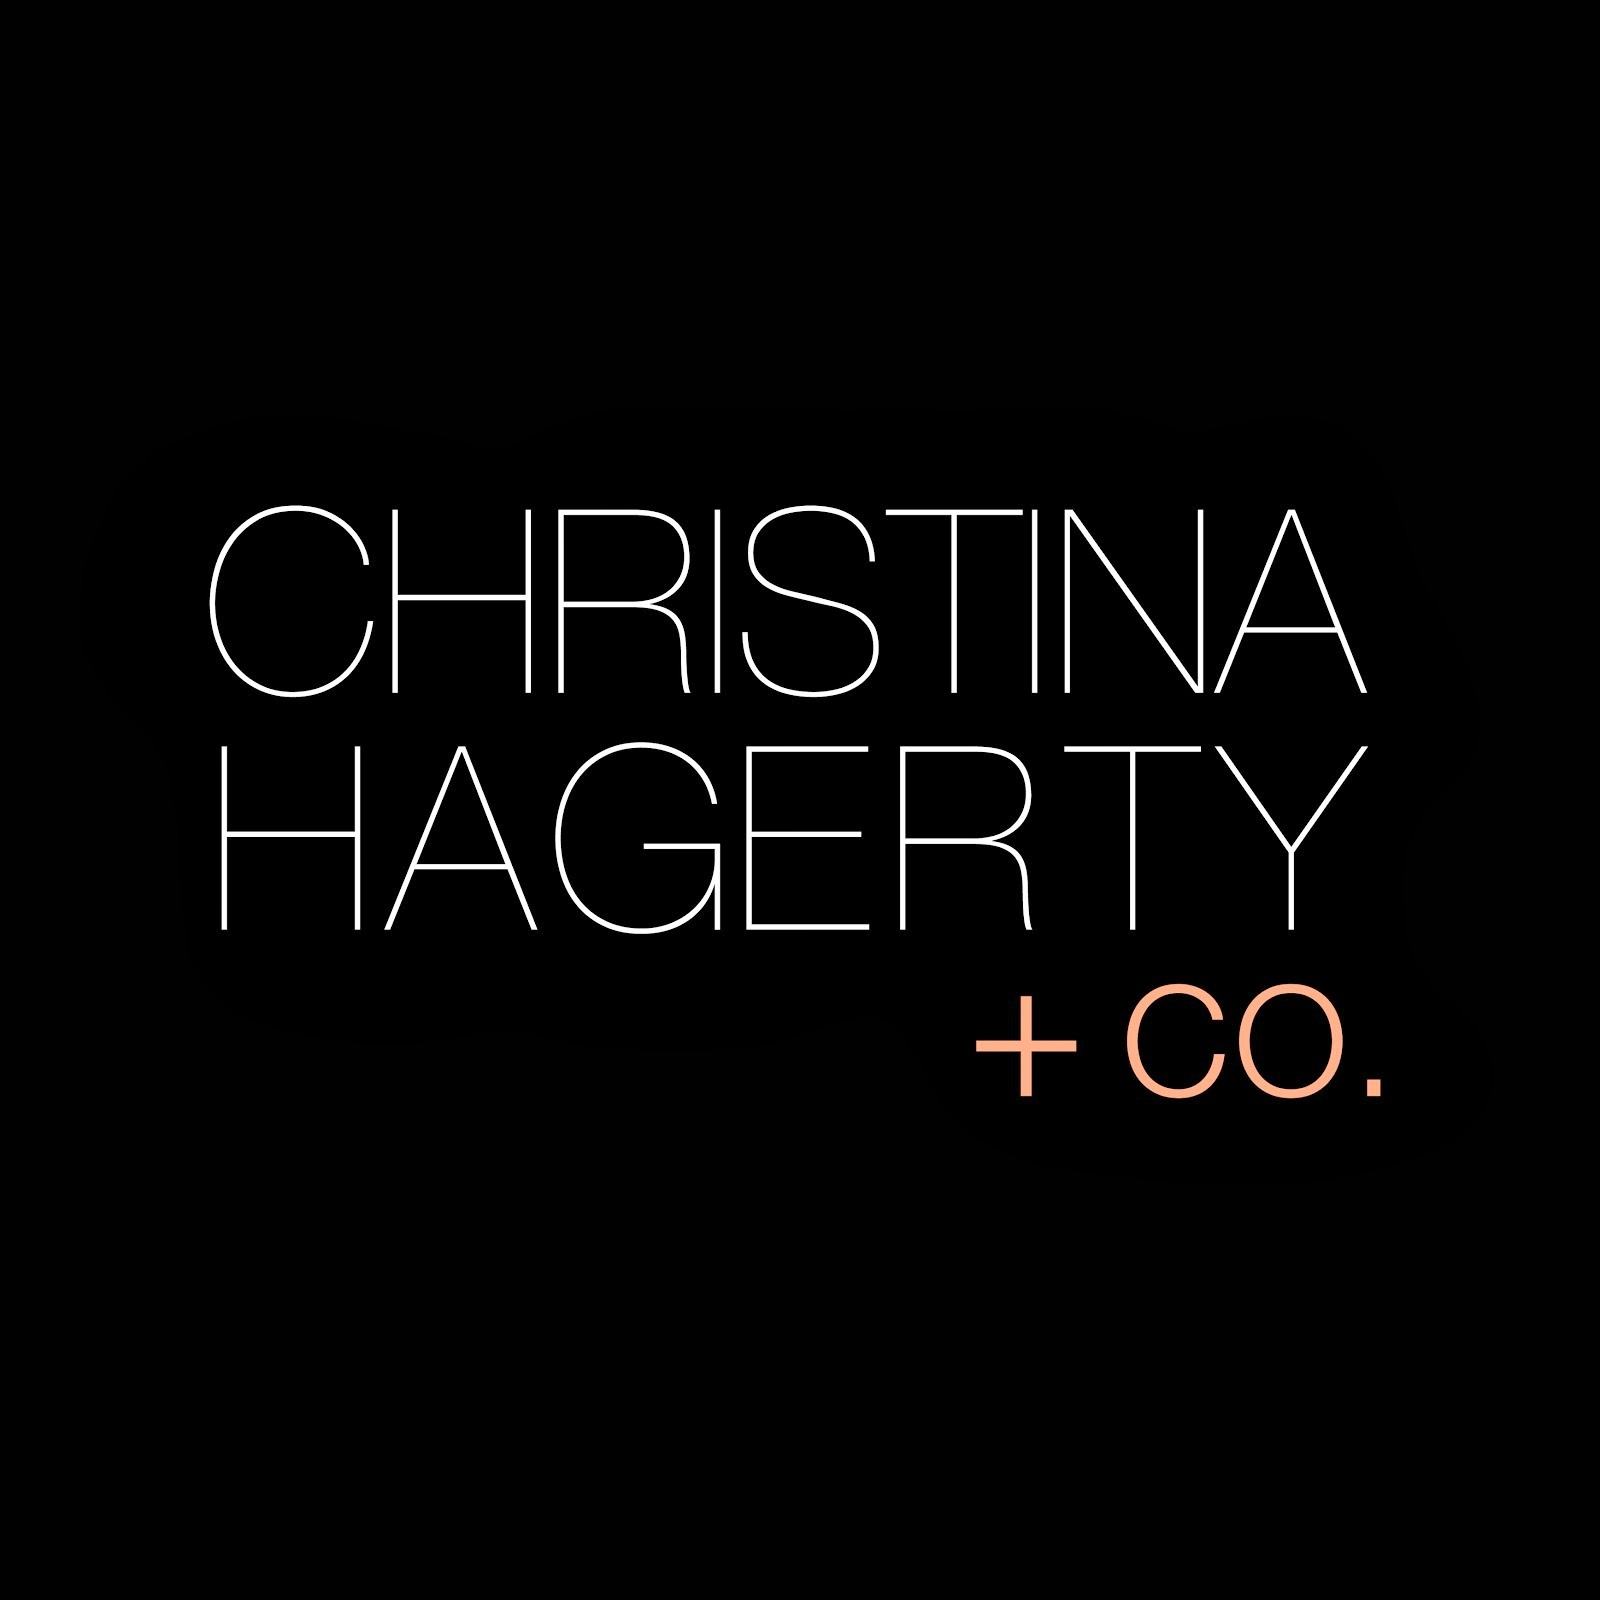 BACK TO CHRISTINA HAGERTY + CO.